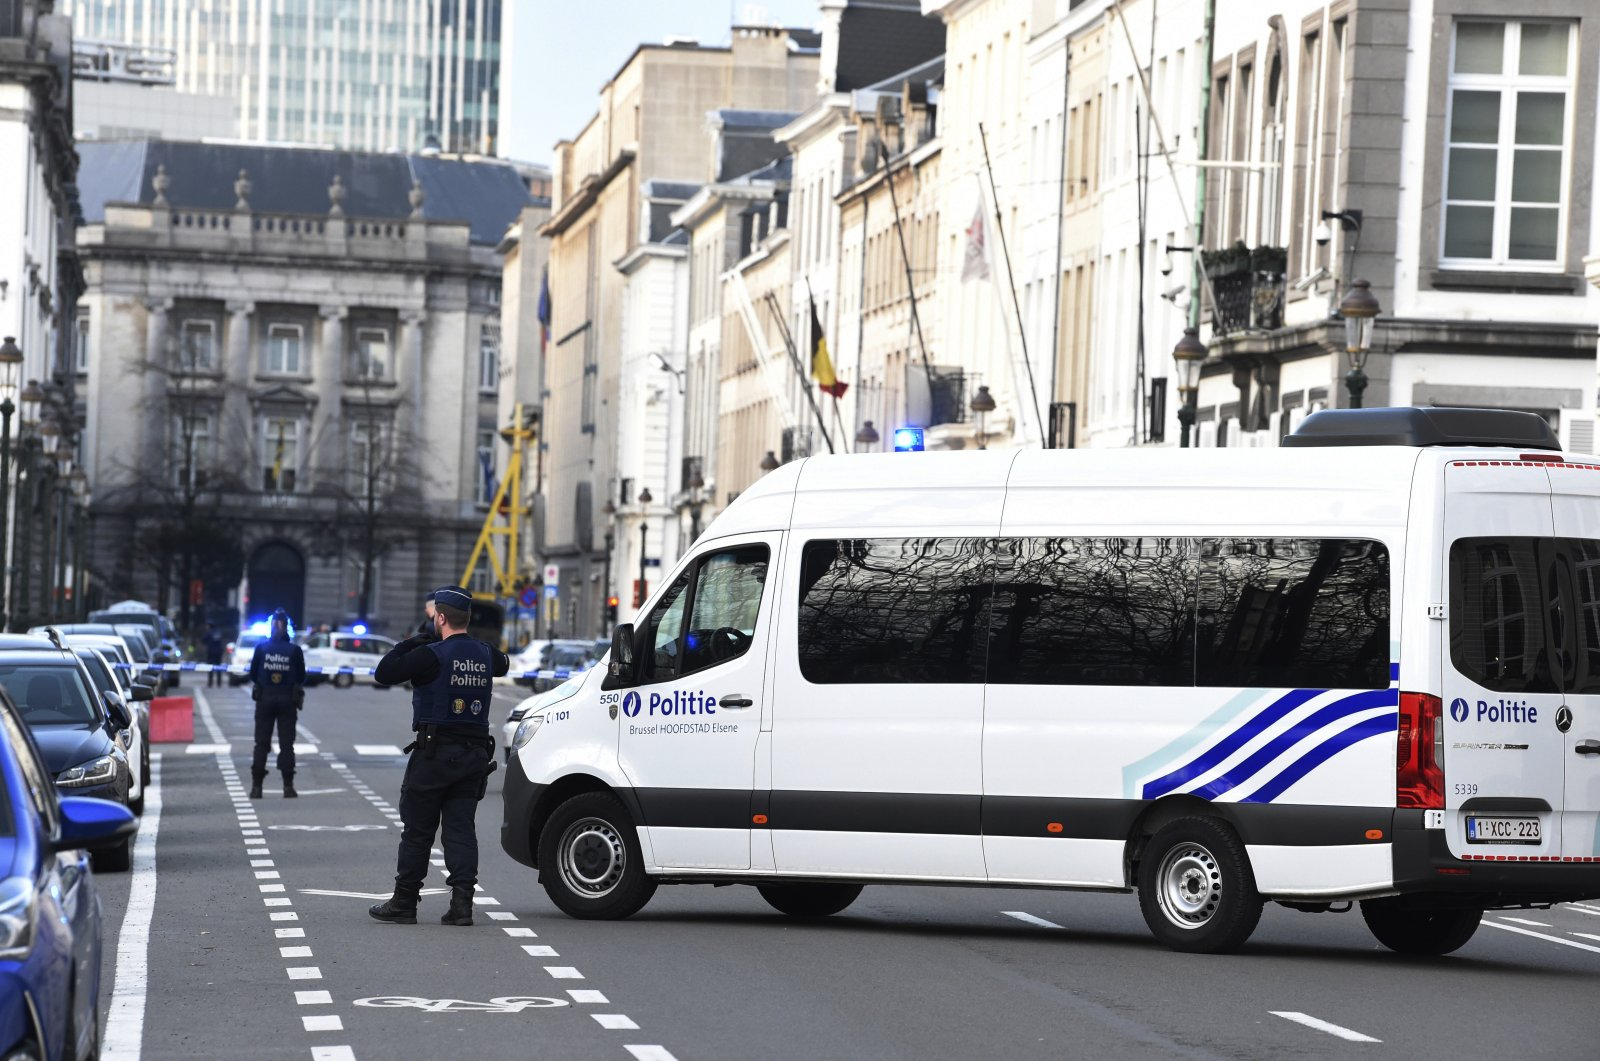 Belgian police has a street closed due to a suspicious car in front of 16 Rue de la Loi, the residence of Belgium's Prime Minister, during a National Security Council meeting at the premises in Brussels, Belgium, 17 March 2020. (EPA Photo)